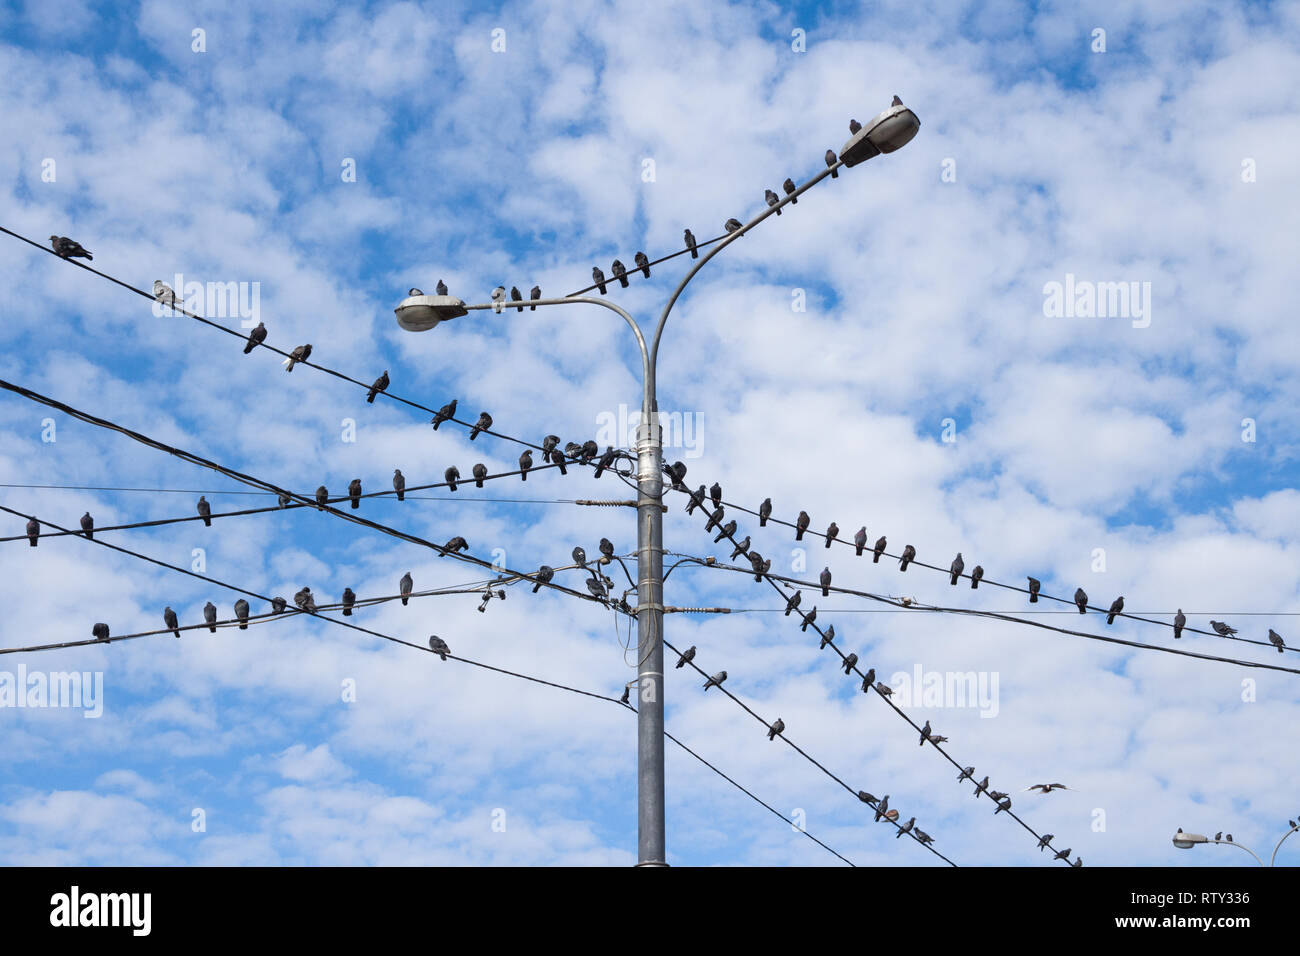 Pigeons on electric concrete pole and street lamp  Group of